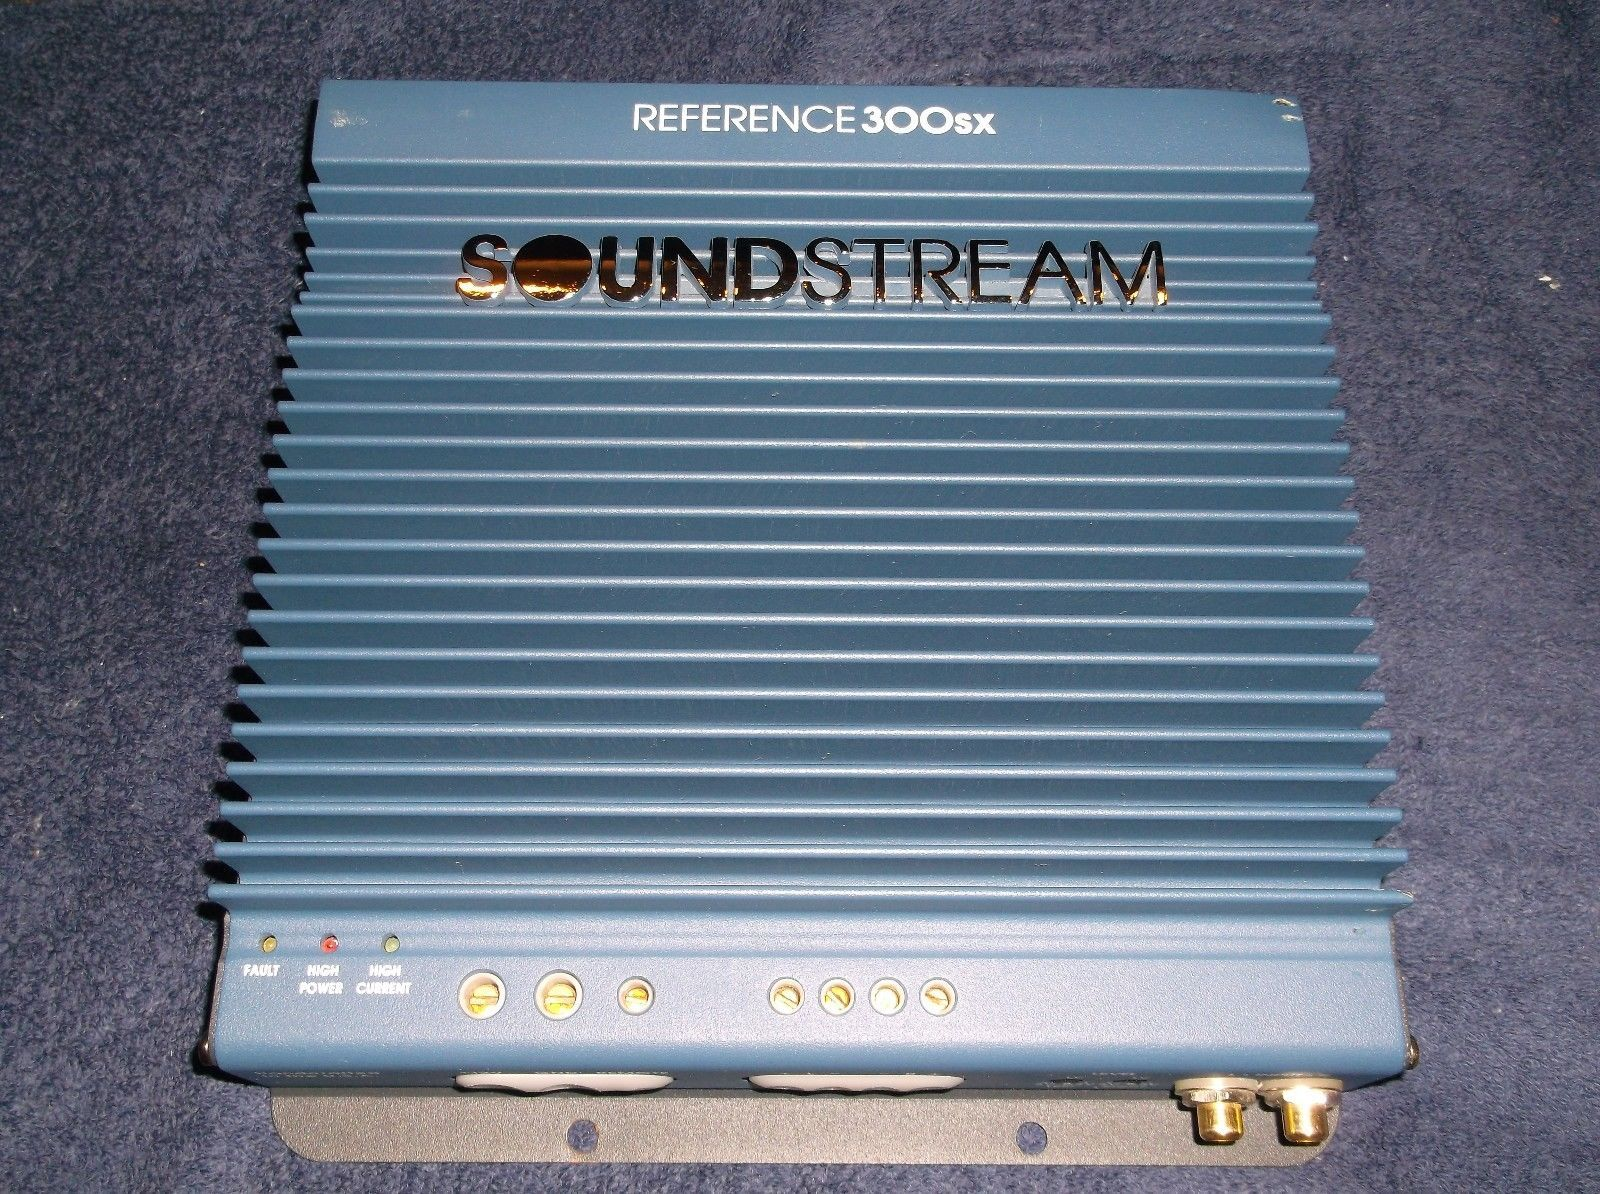 Soundstream Reference 300sx 2 Channel Amplifier Made In Usa Car Audio Audio Ideas Old School Cars